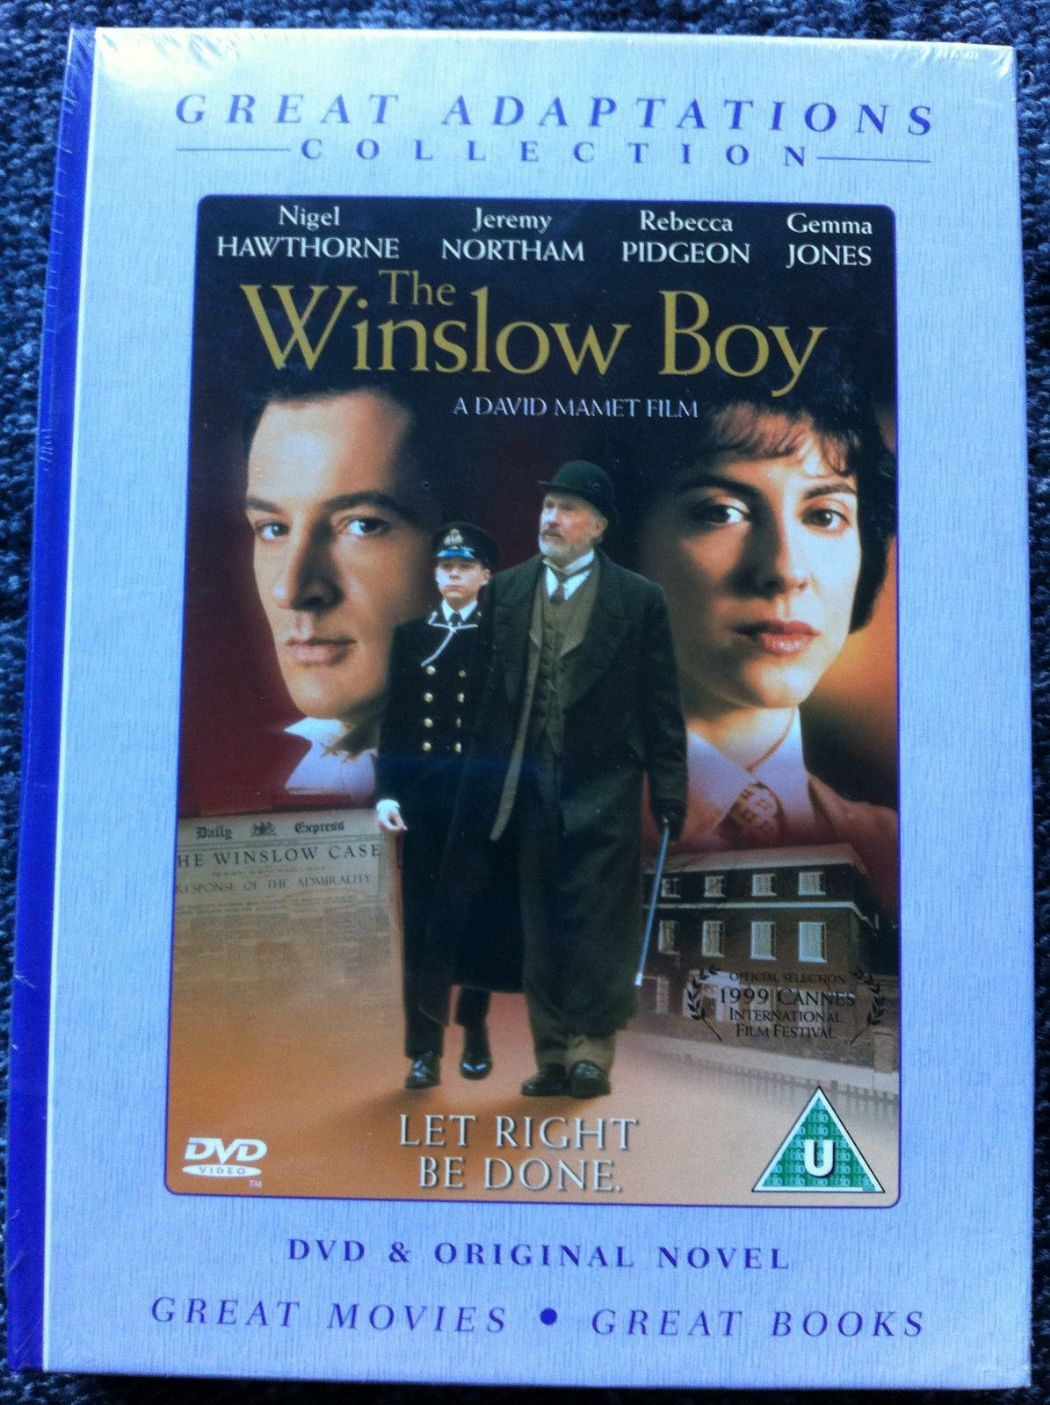 GREAT ADAPTATIONS COLLECTION - THE WINSLOW BOY - NOVEL AND DVD 2007 (NEW N SEALED